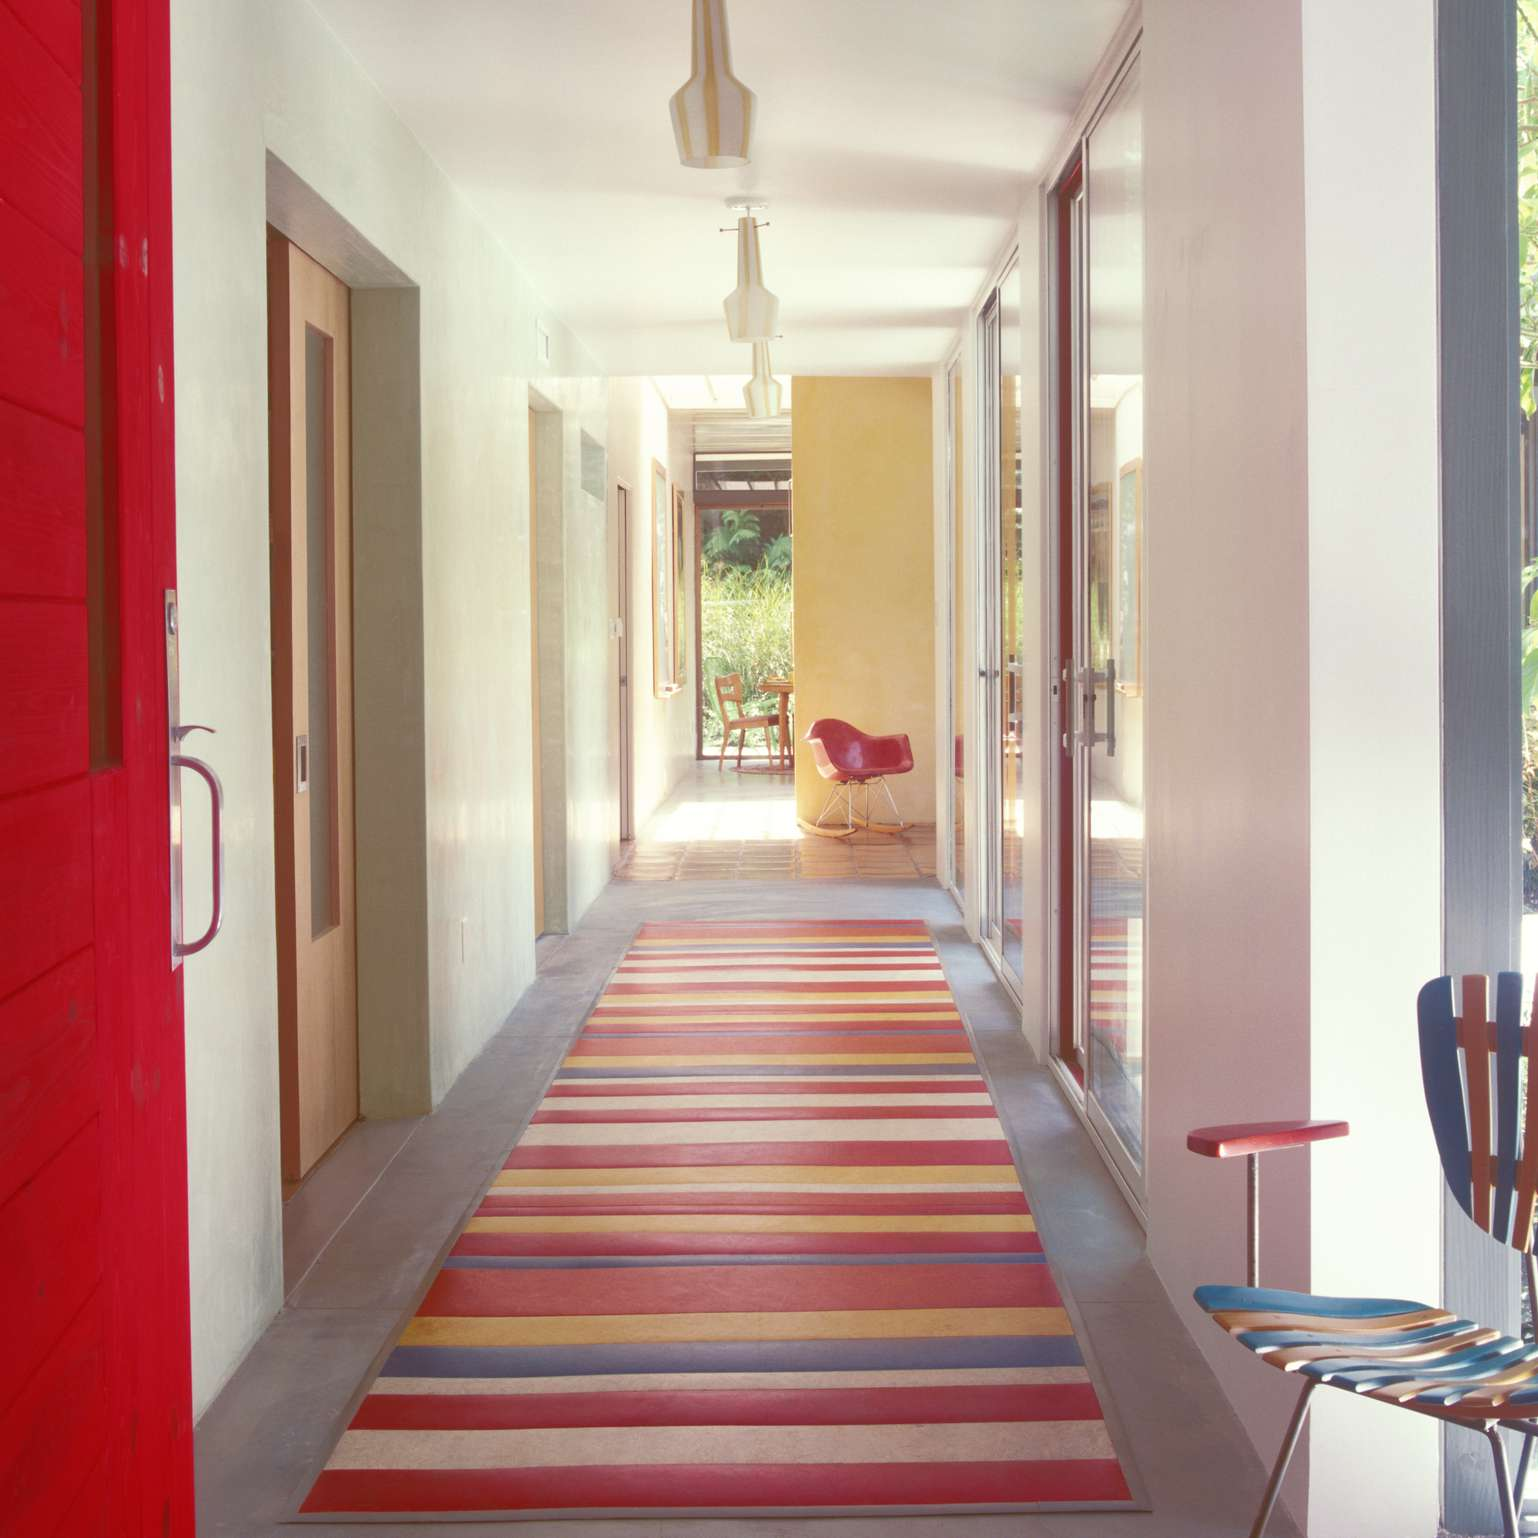 colorful hallway with a red, blue, and yellow runner